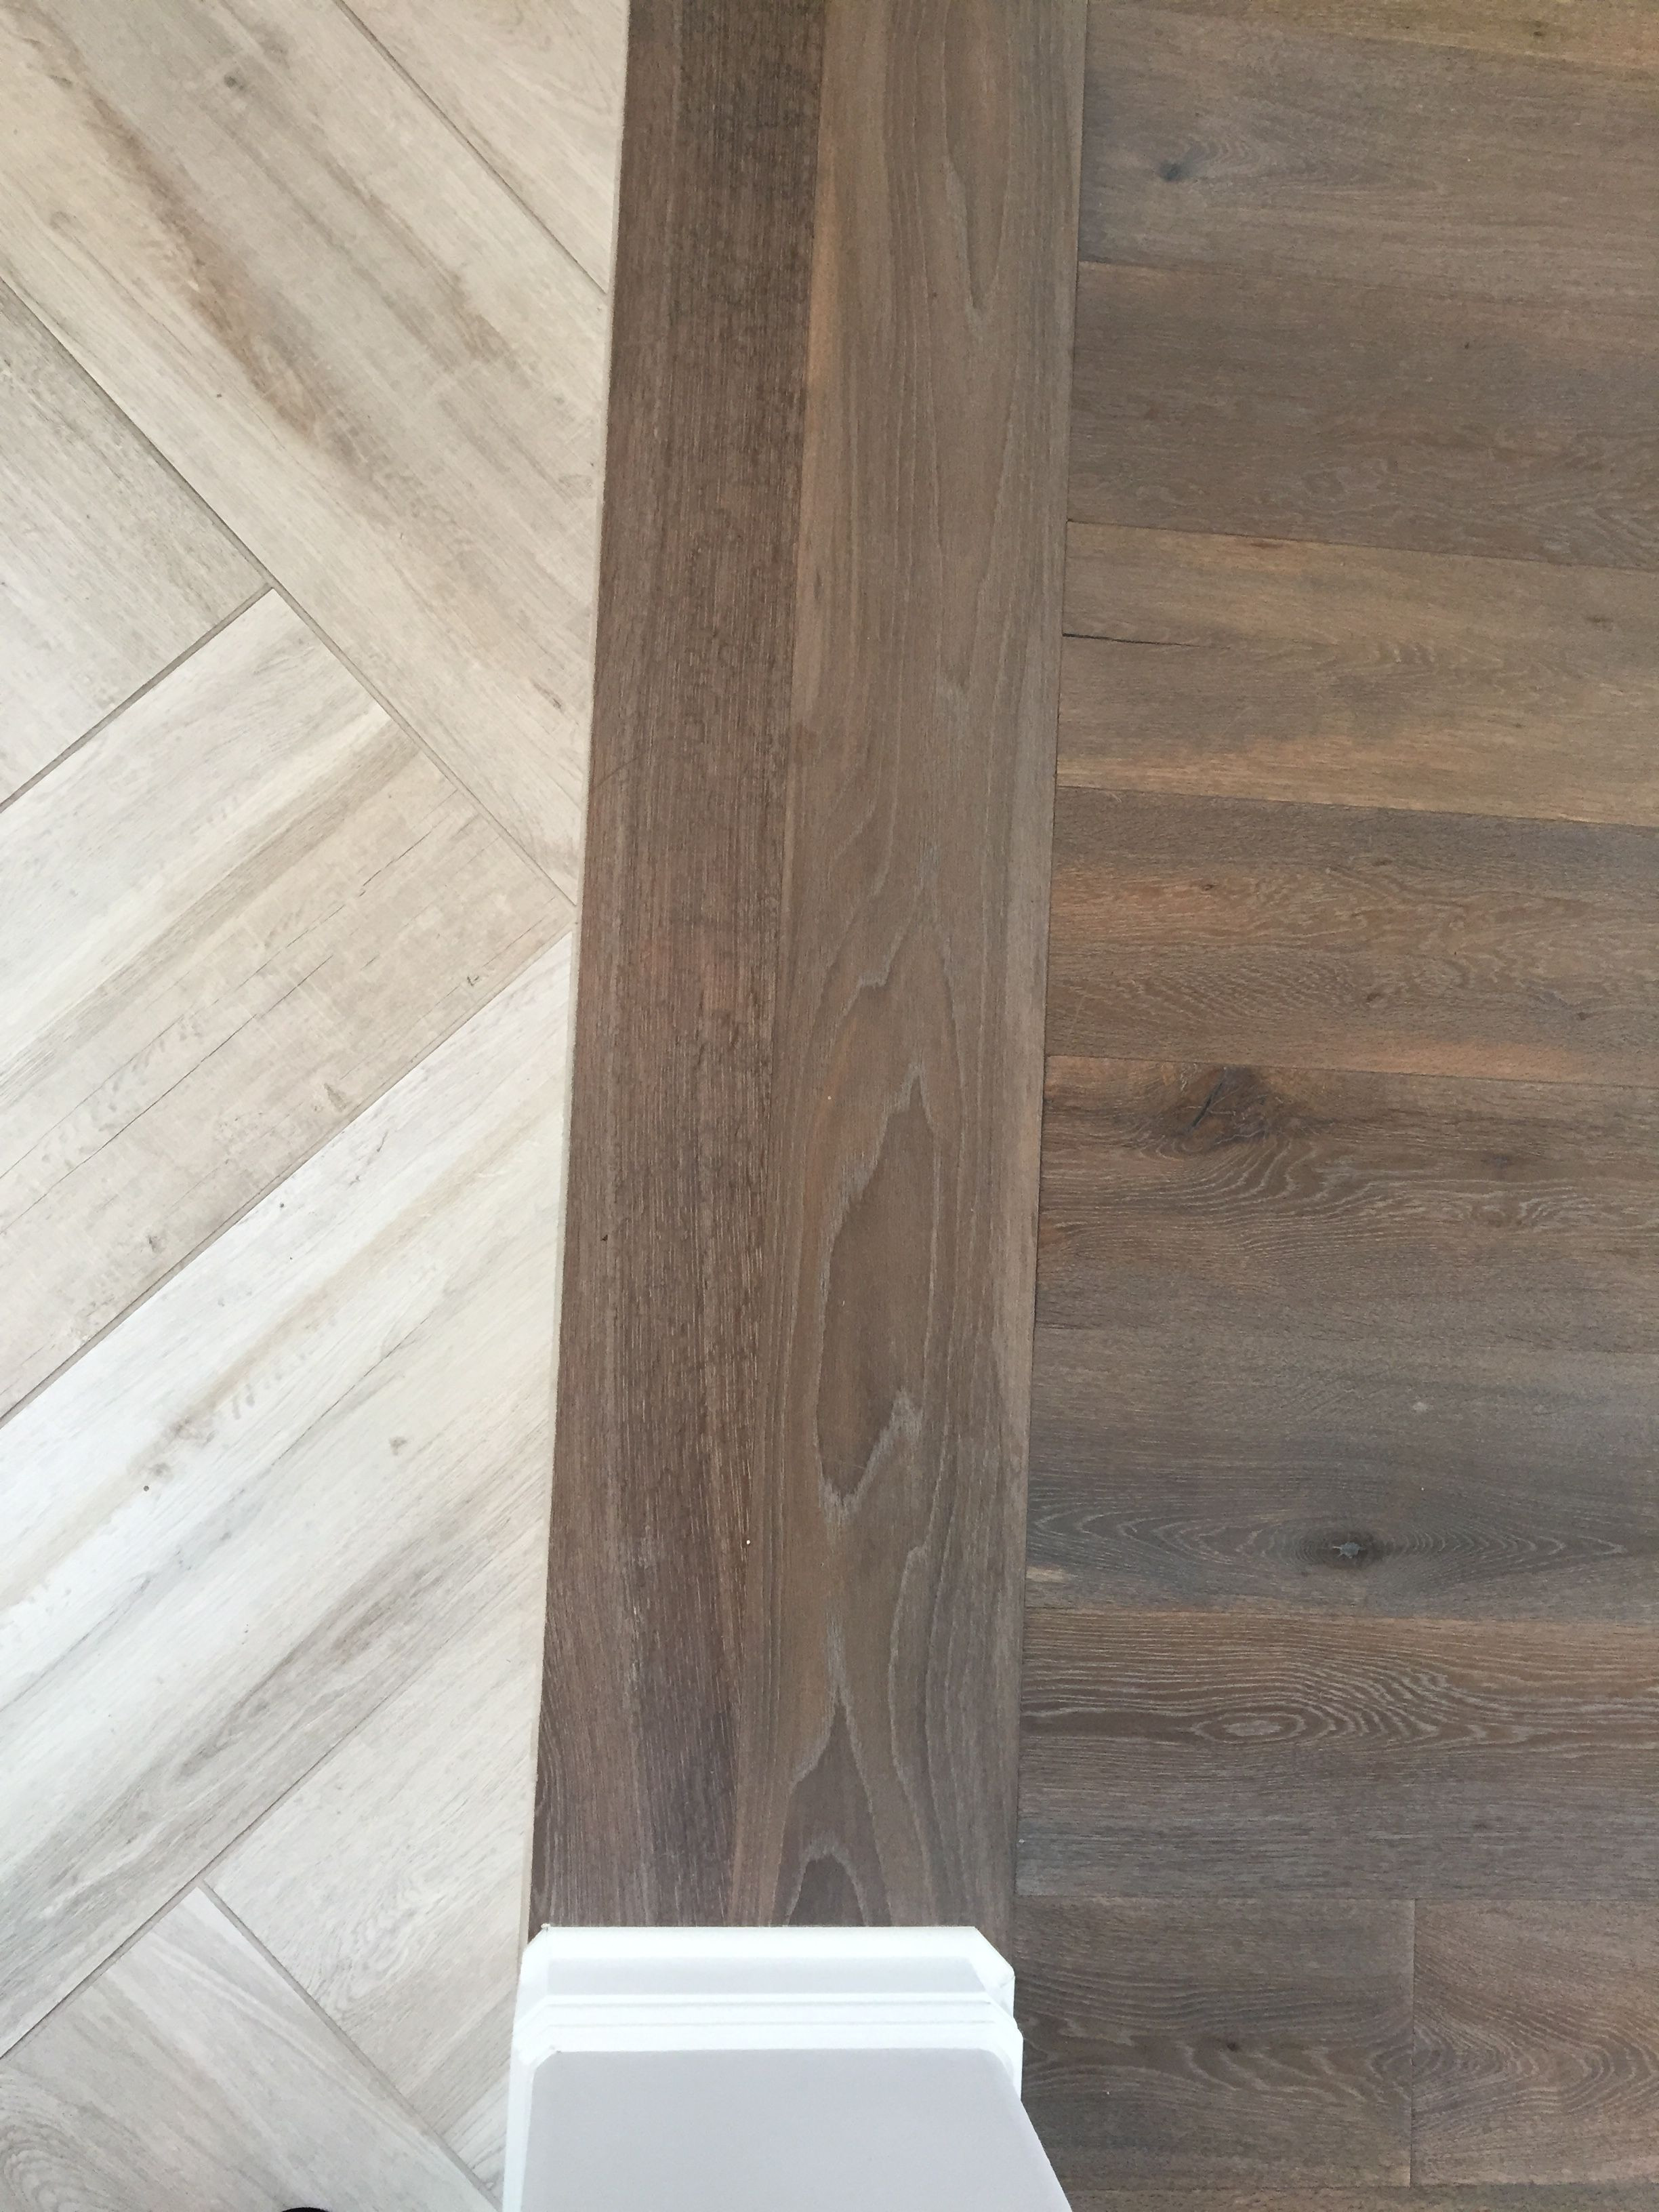 Hardwood Floor Vs Tile Cost Of Floor Transition Laminate to Herringbone Tile Pattern Model with Floor Transition Laminate to Herringbone Tile Pattern Herringbone Tile Pattern Herringbone Wood Floor